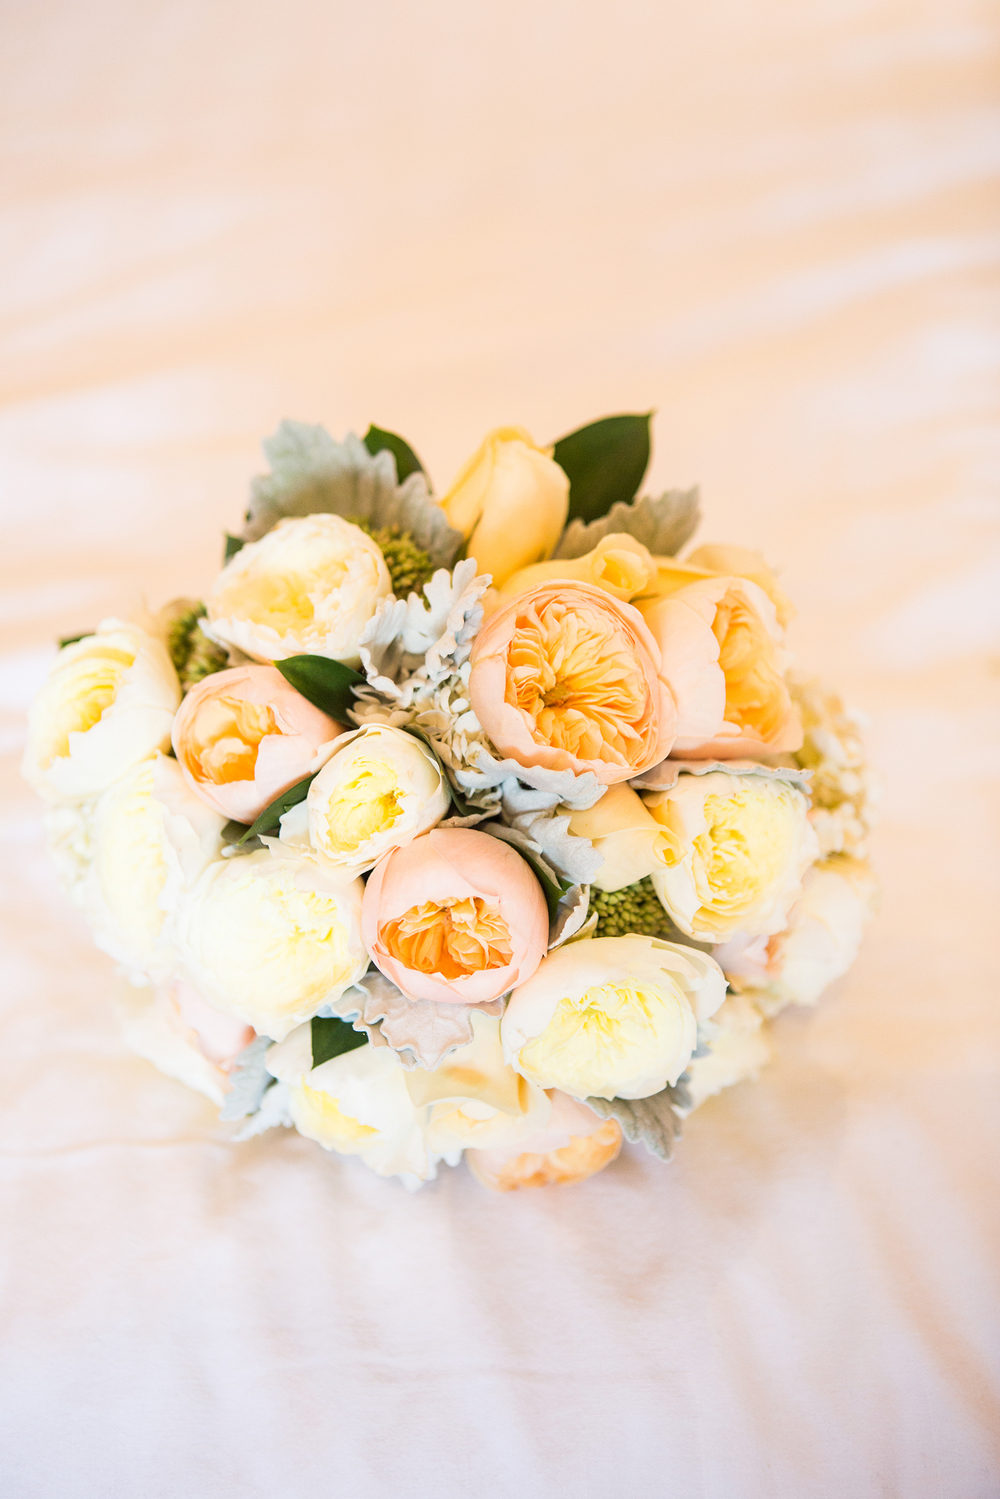 Yellow vintage wedding flowers Dress from Astra Bridal | Photography Kirsty and Grant Photography | www.borrowedandblue.kiwi